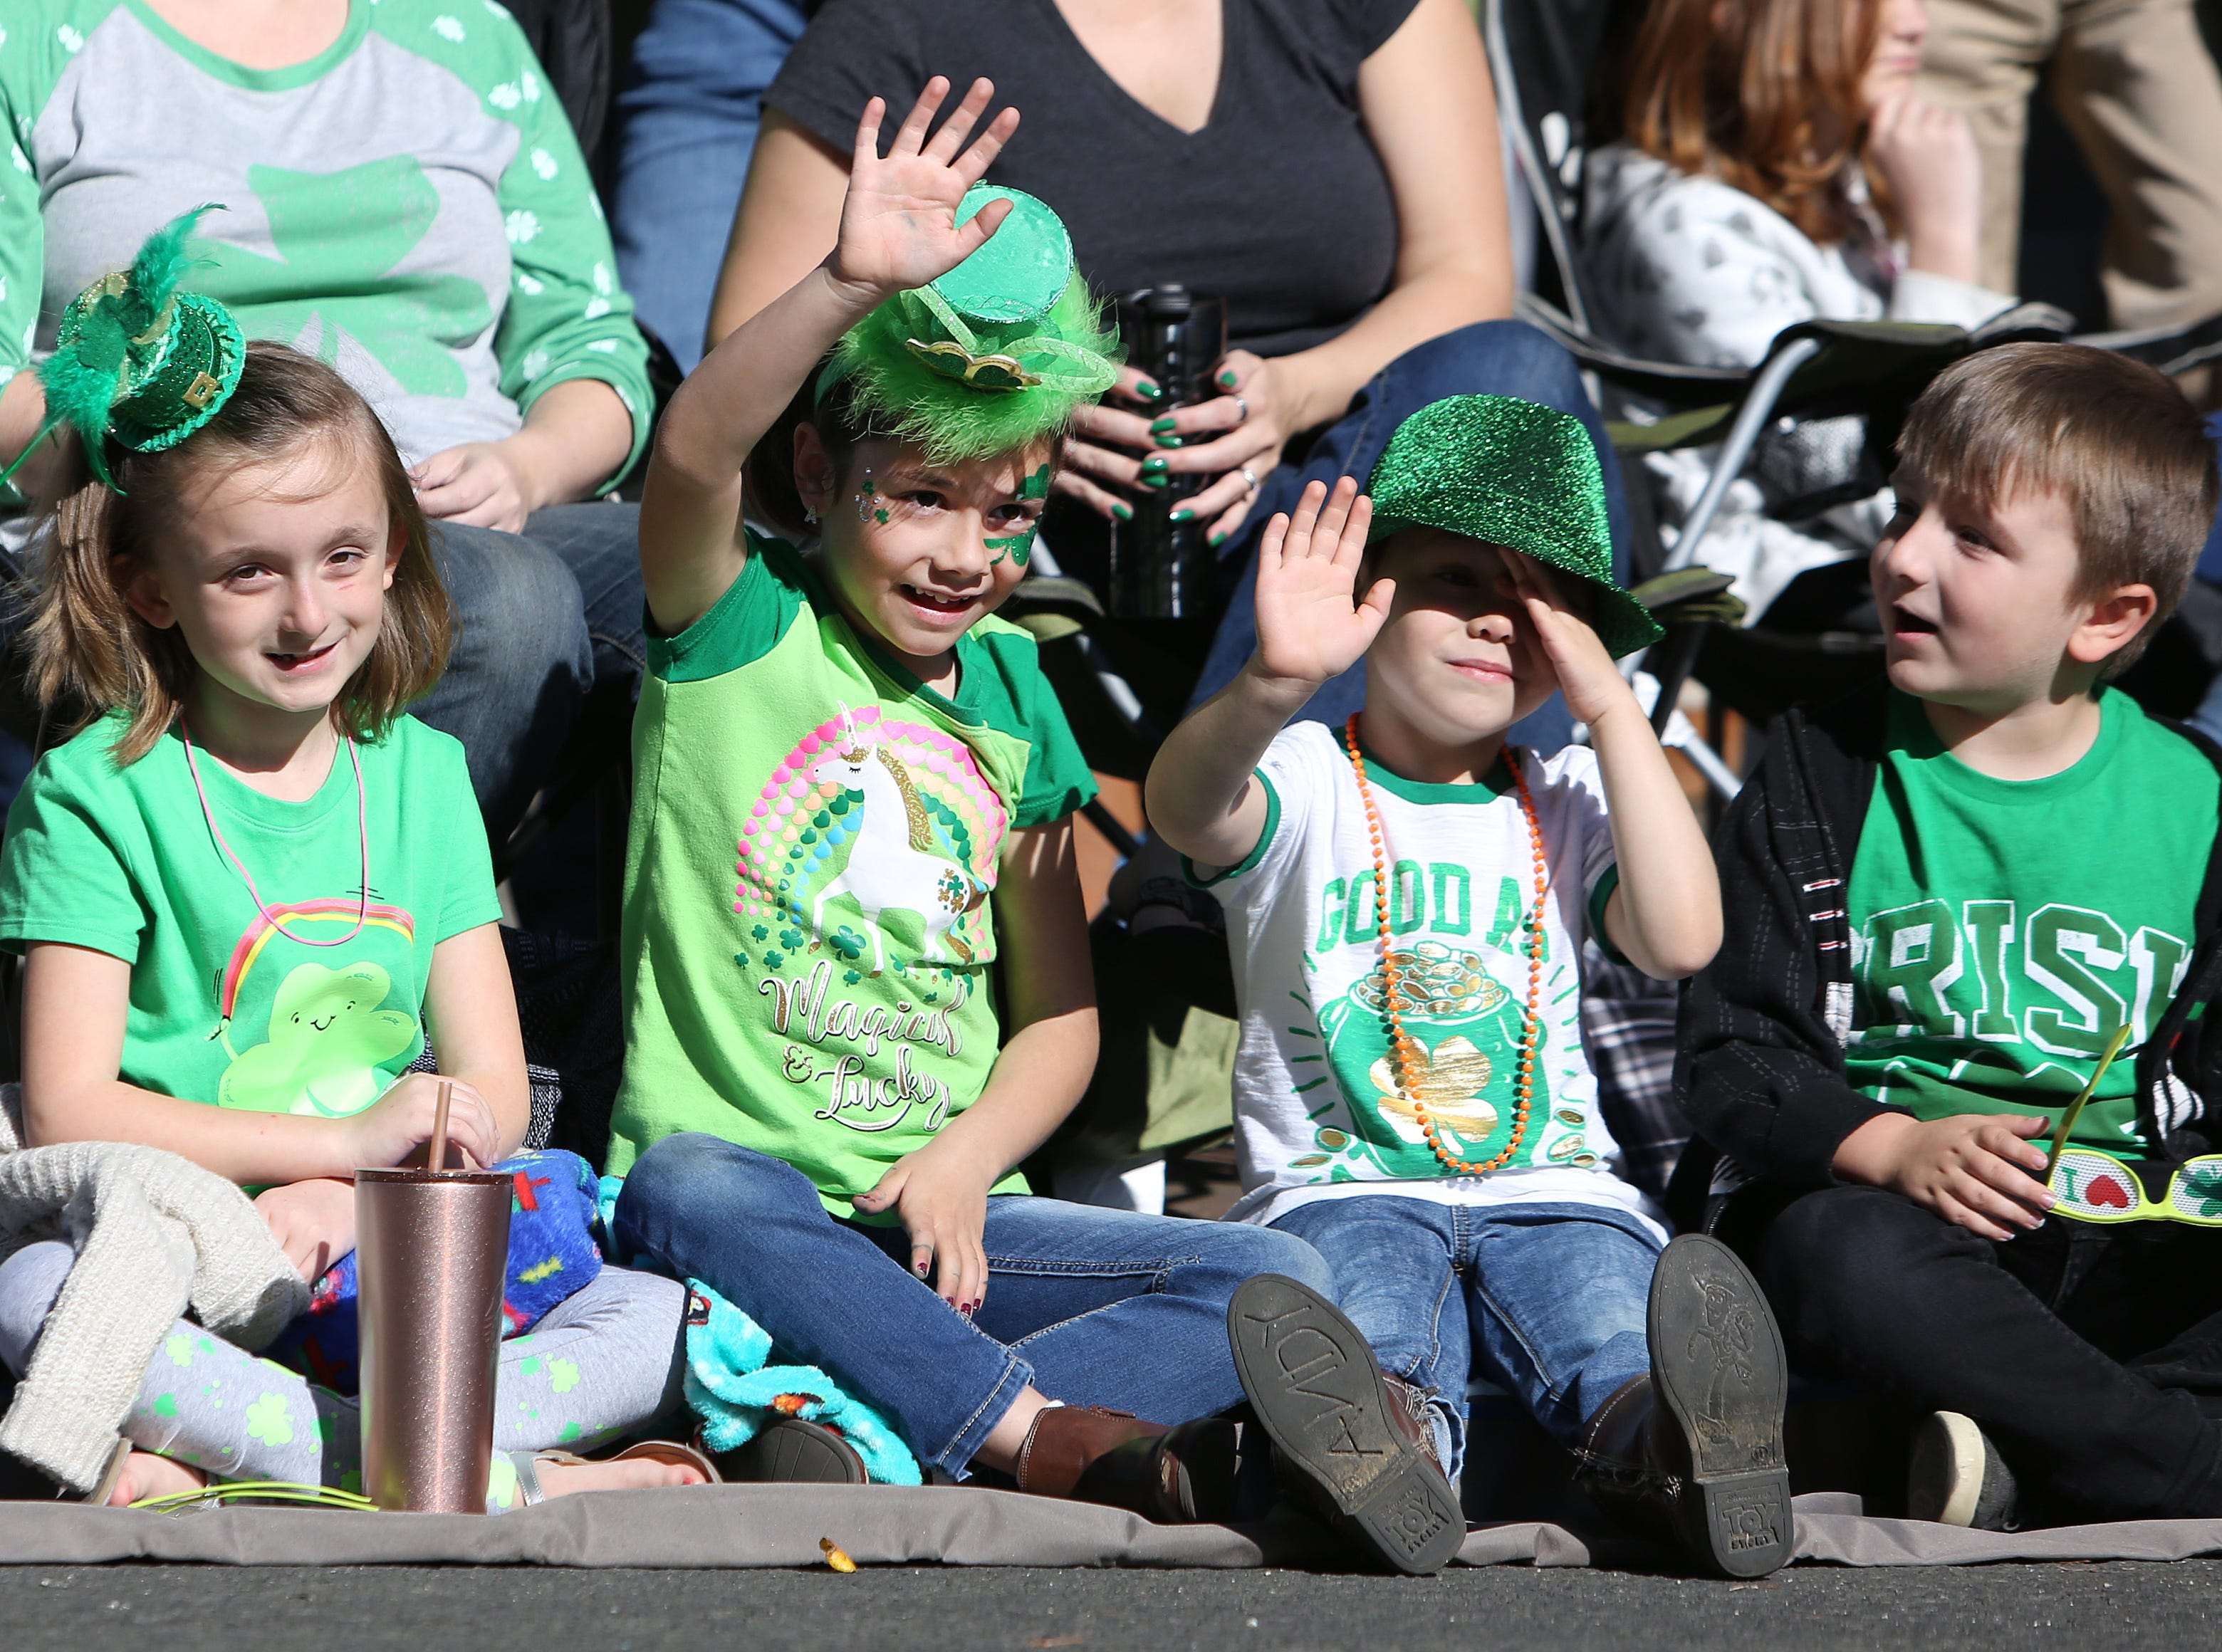 From left to right, Amber Lynn Mitchell, Aubrey and Grant Guerra, and Mason Mitchell enjoy the floats that pass by at this year's St. Patrick's Day parade rolling through Main Street Saturday, March 16, 2019 in Visalia, Calif.